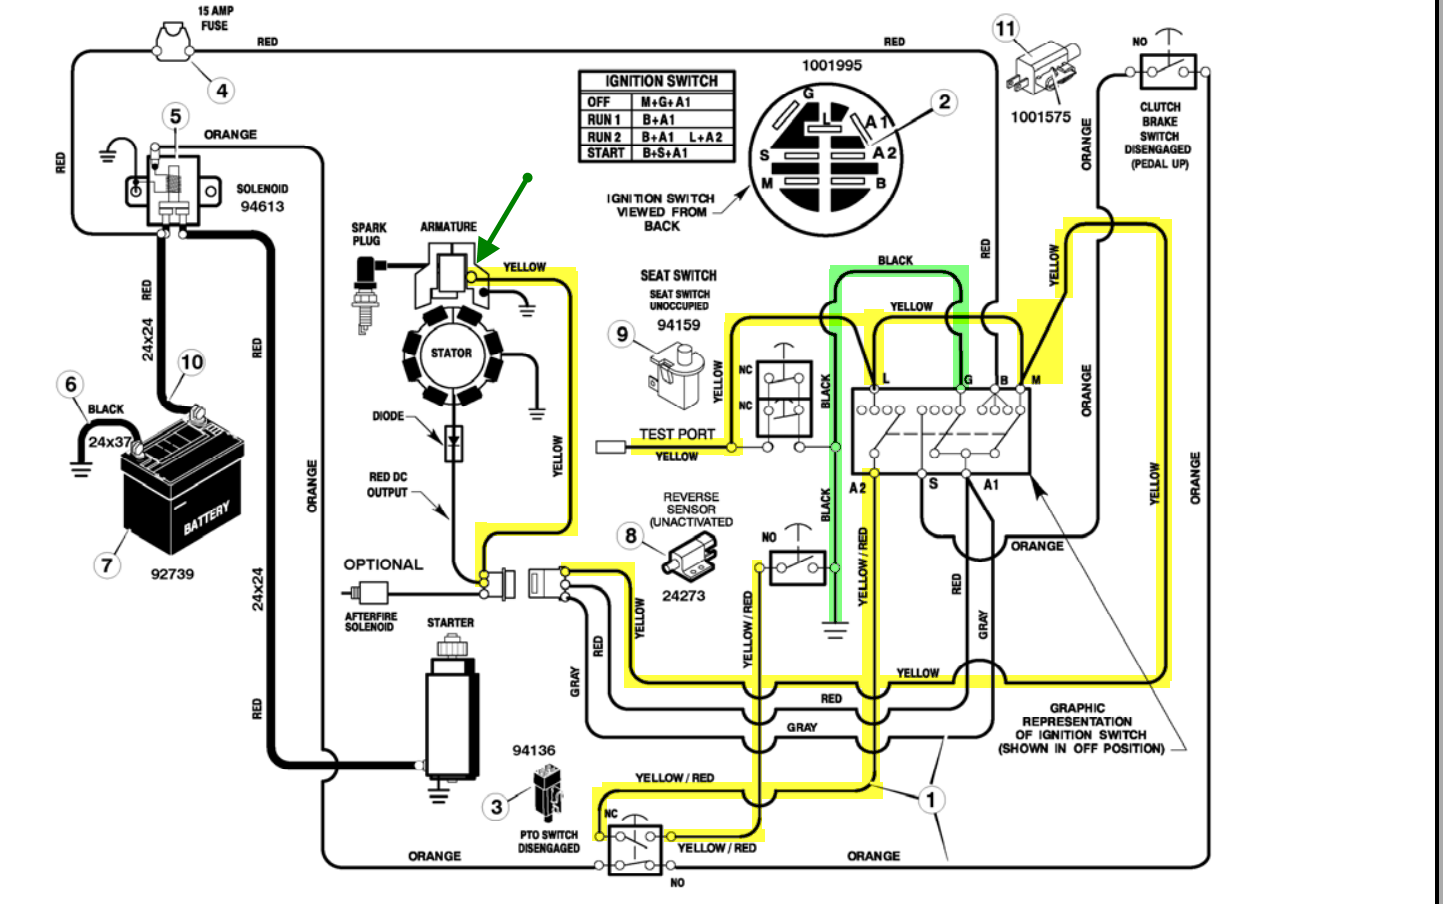 Wiring Diagram For Briggs And Stratton Engine Kawasaki Ninja 600 Wiring Diagram Goldwings Ab12 Jeanjaures37 Fr